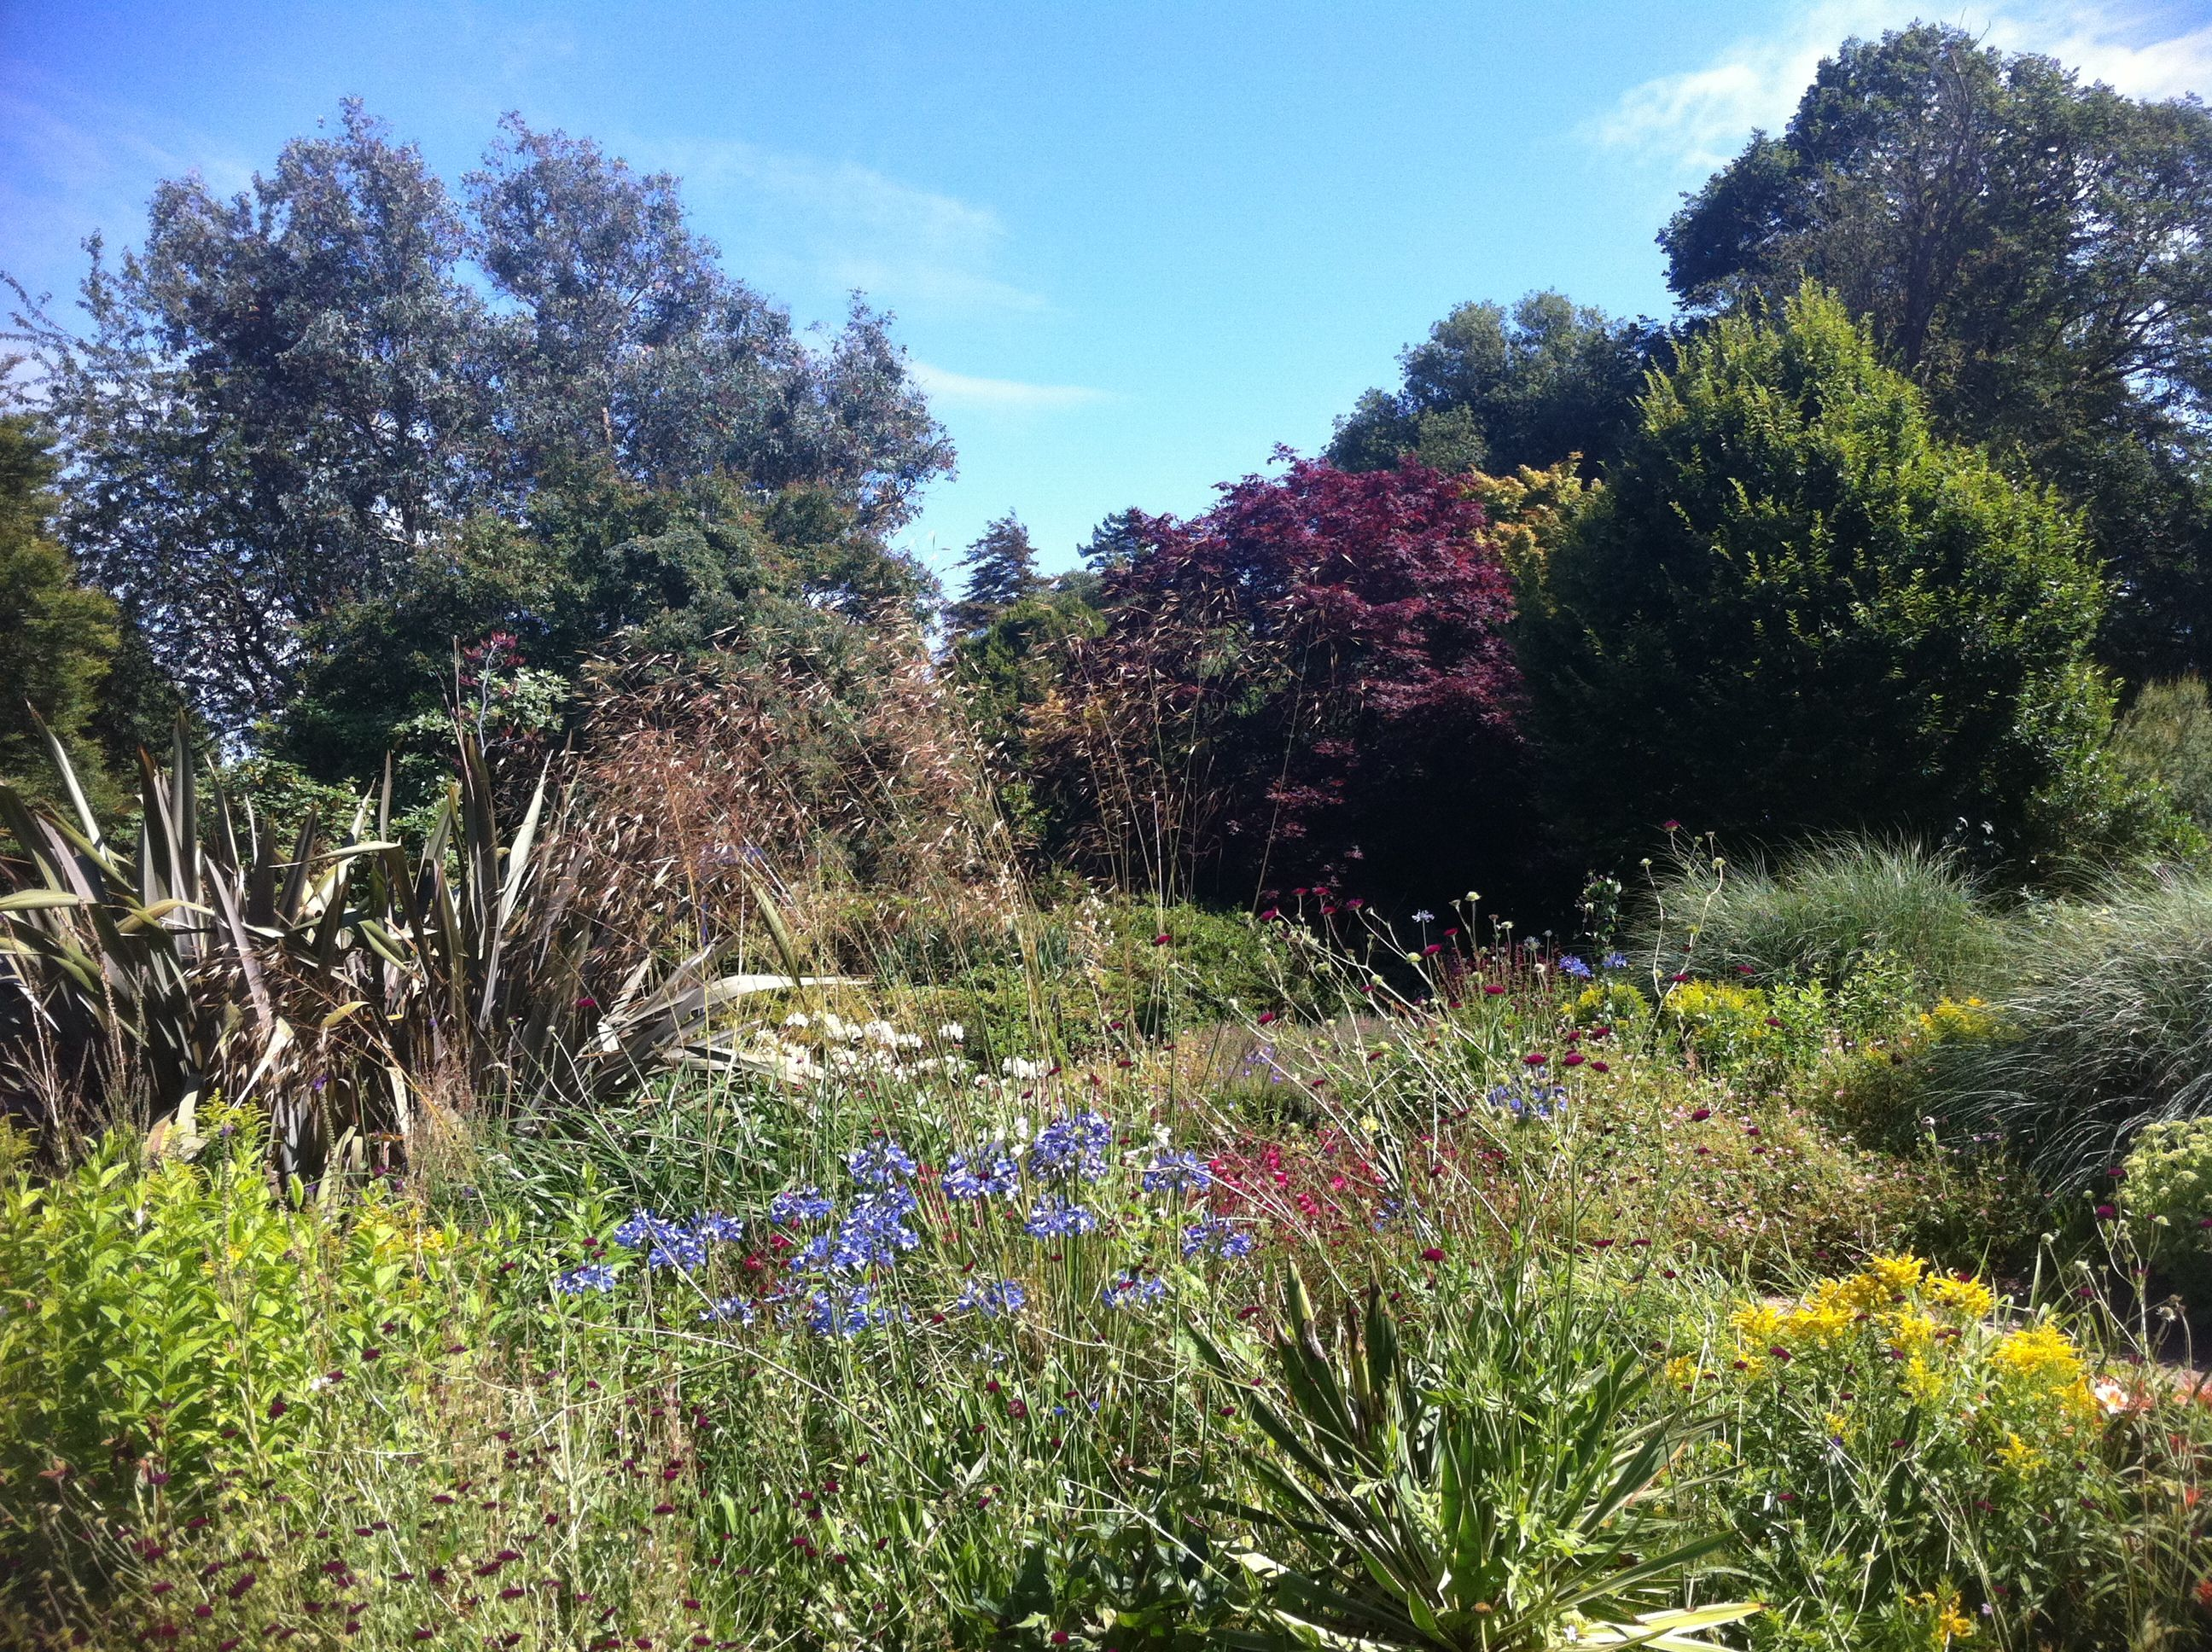 The beautiful Exbury Gardens, one of the stops on the New Forest Tour where you can join the Gardens' steam train through a childrens' sculptor park... they'll love it!